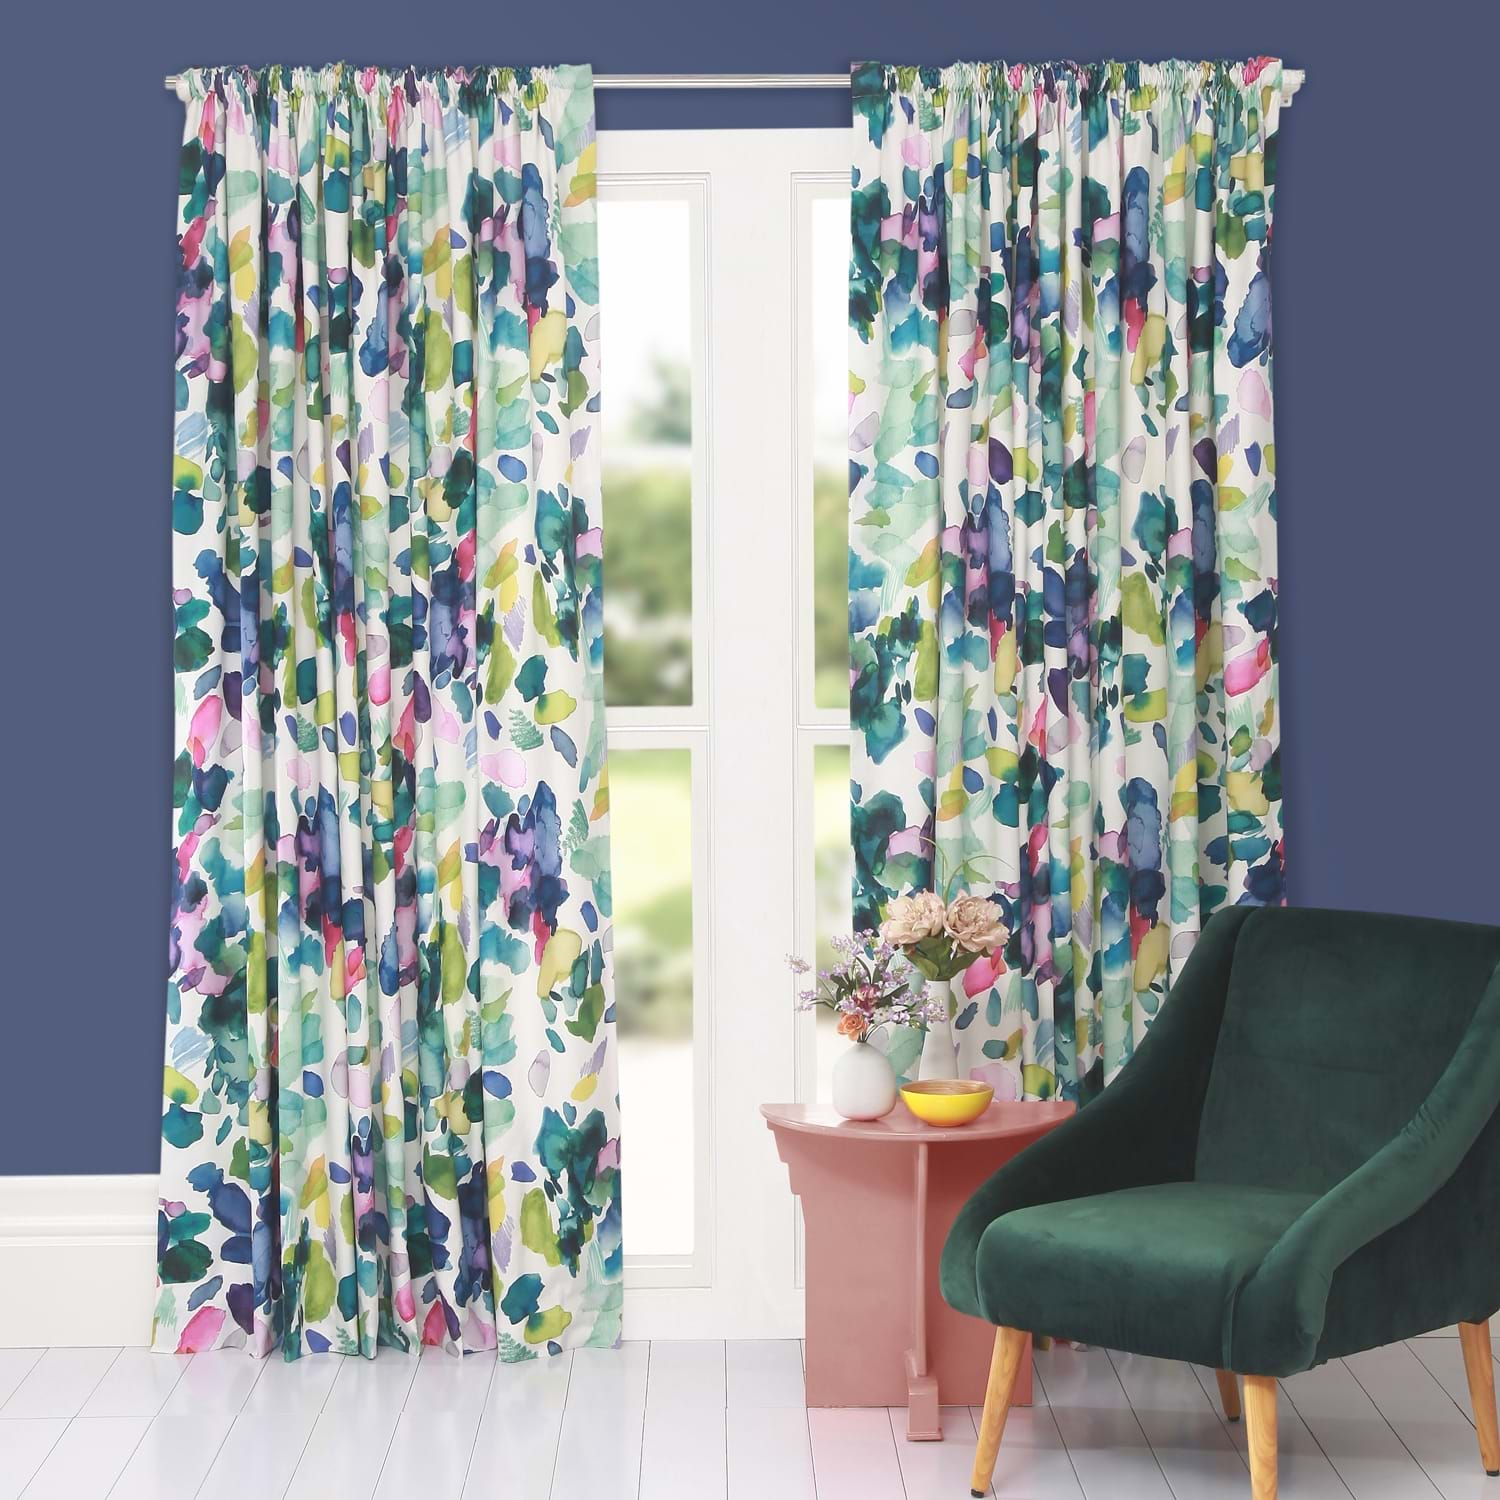 Image of Bluebellgray Palette Curtains 167 x 182cm, Multicoloured